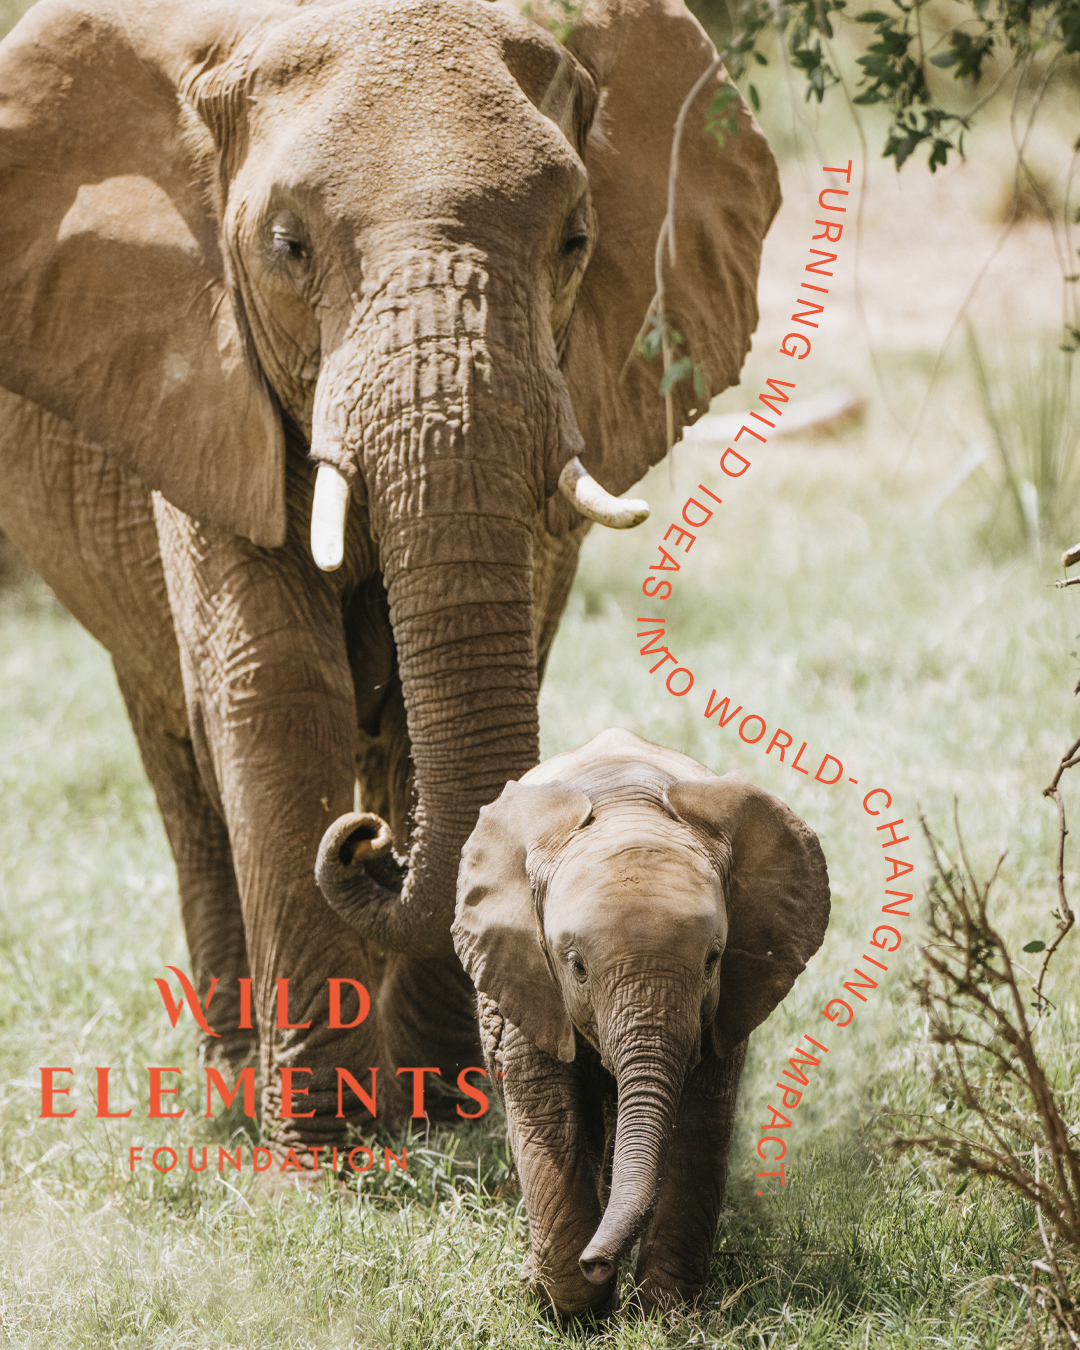 Press Release: WILD ELEMENTS Foundation Launches With Unprecedented Approach to Investing in Women Conservation Leaders